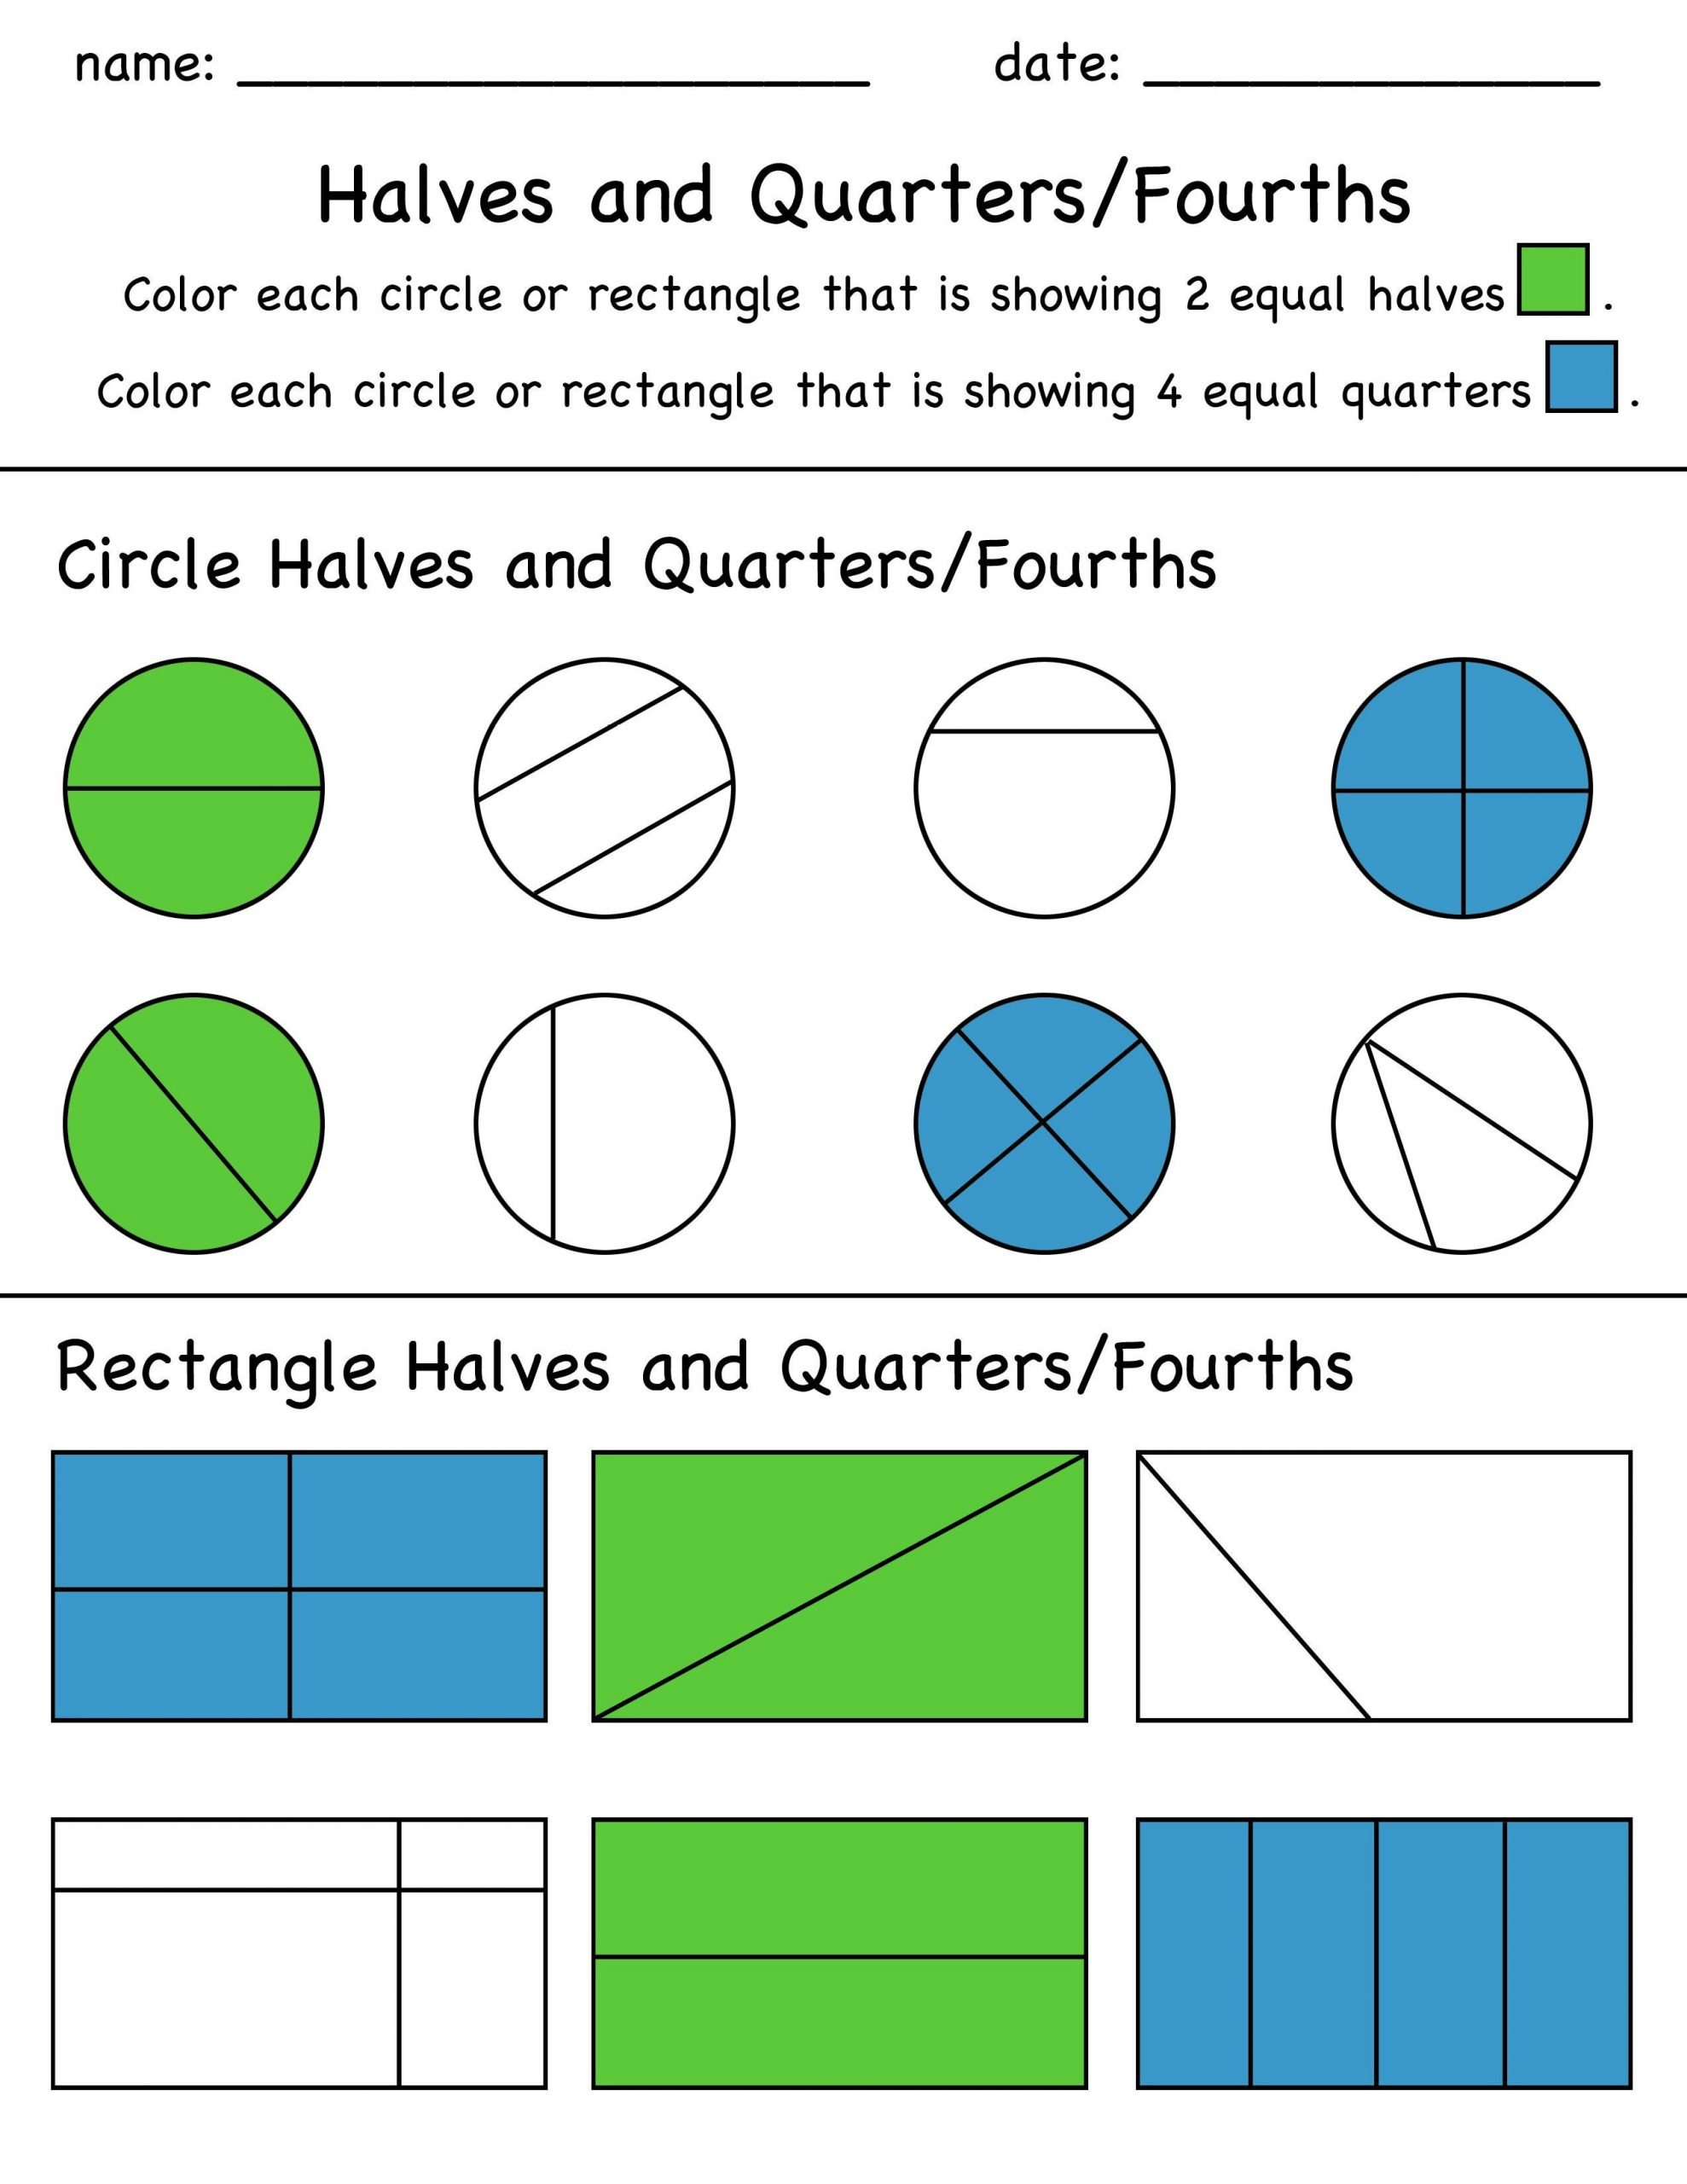 Halves Thirds Fourths Worksheets Halves and Quarters Fractions Color In Worksheet Students